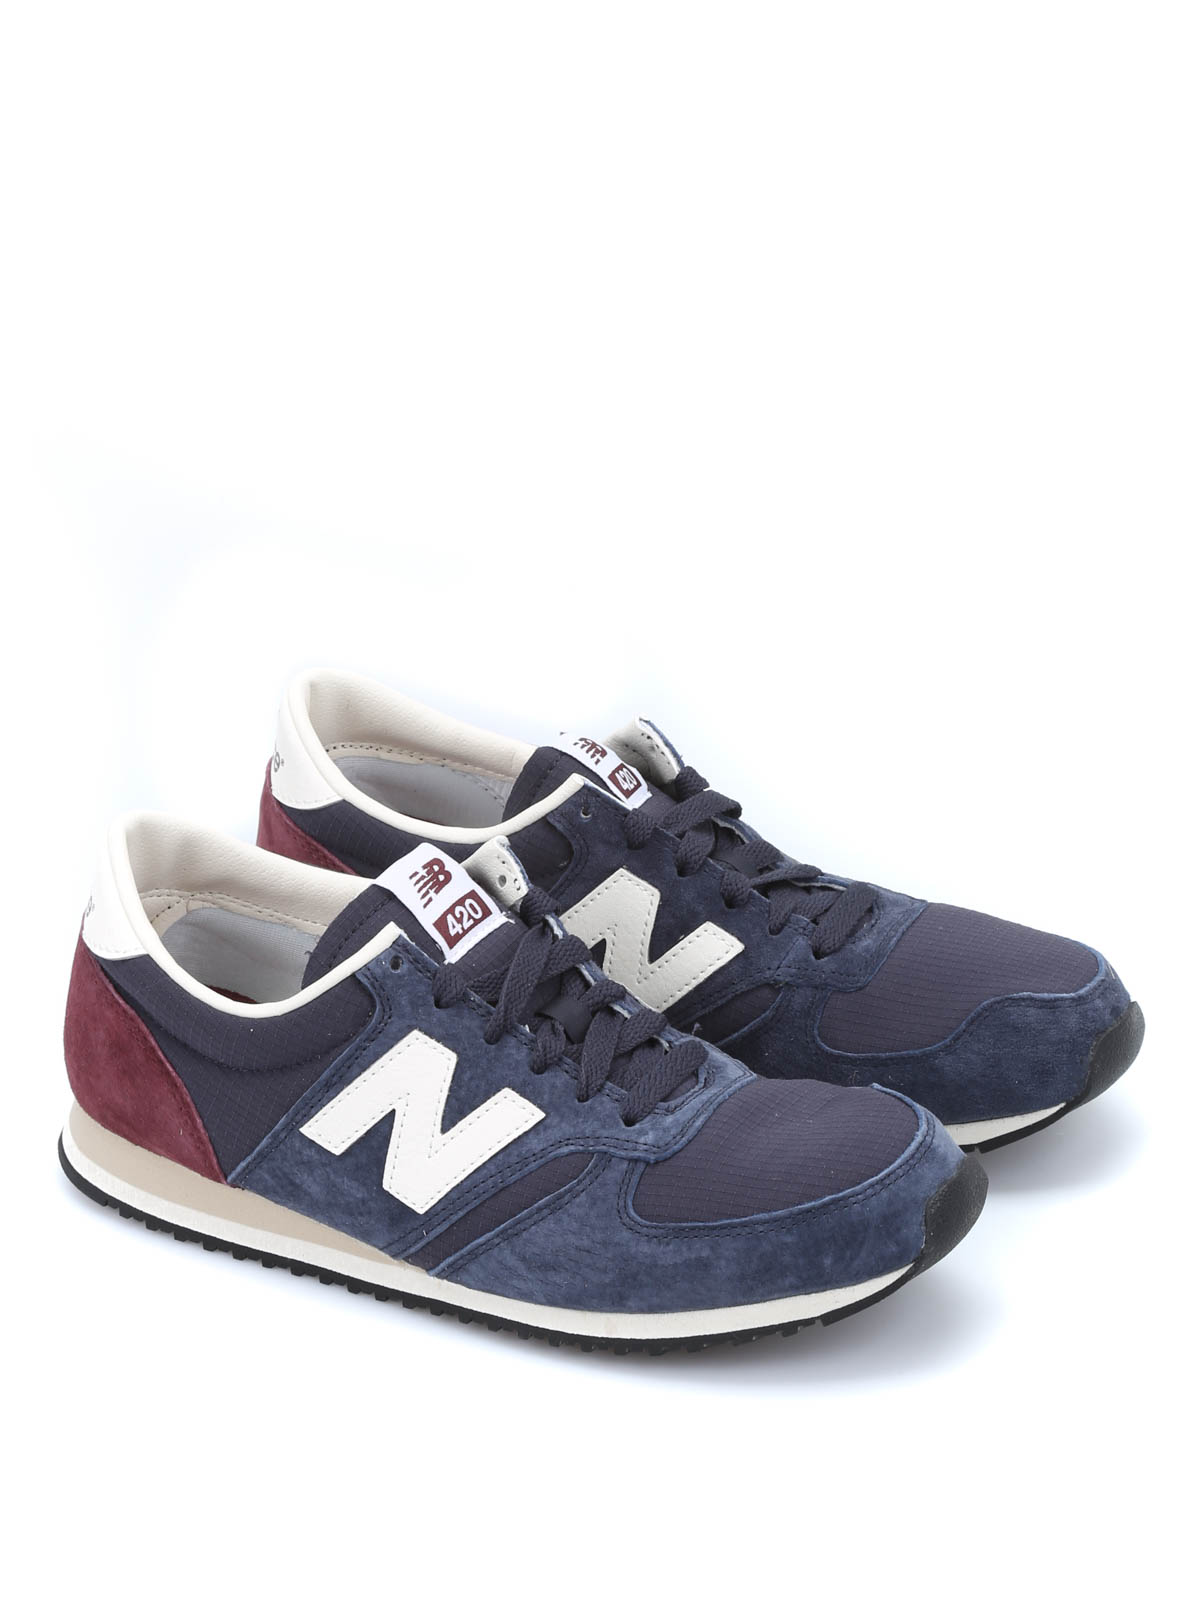 420 pigskin sneakers by new balance trainers ikrix. Black Bedroom Furniture Sets. Home Design Ideas